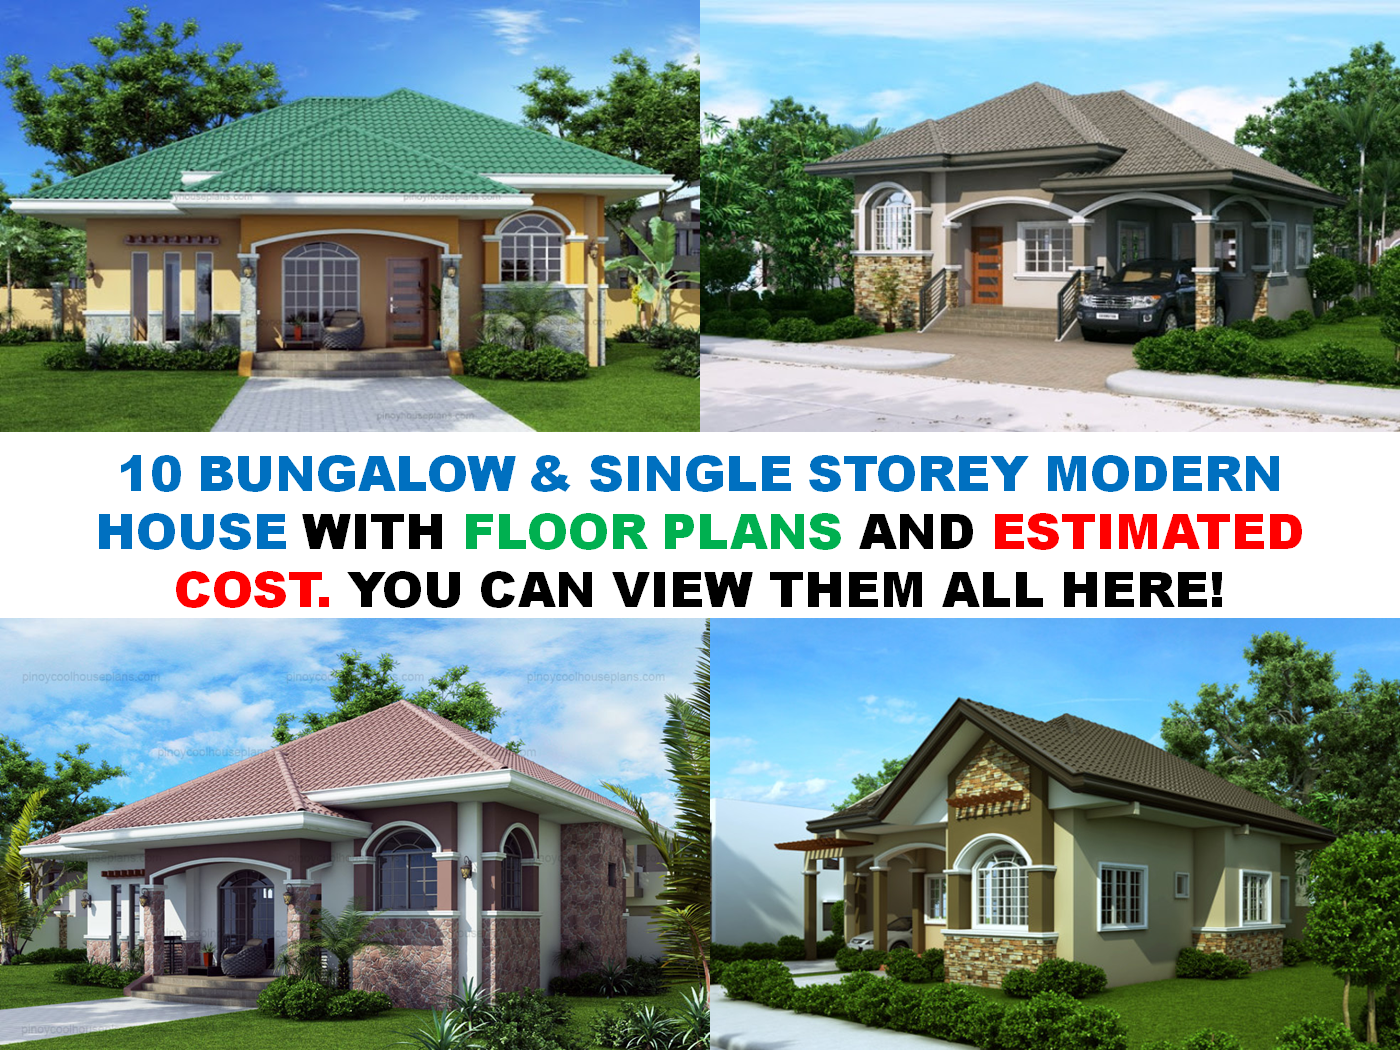 SEE ALSO  10 BUNGALOW SINGLE STORY MODERN HOUSE WITH FLOOR PLANS AND